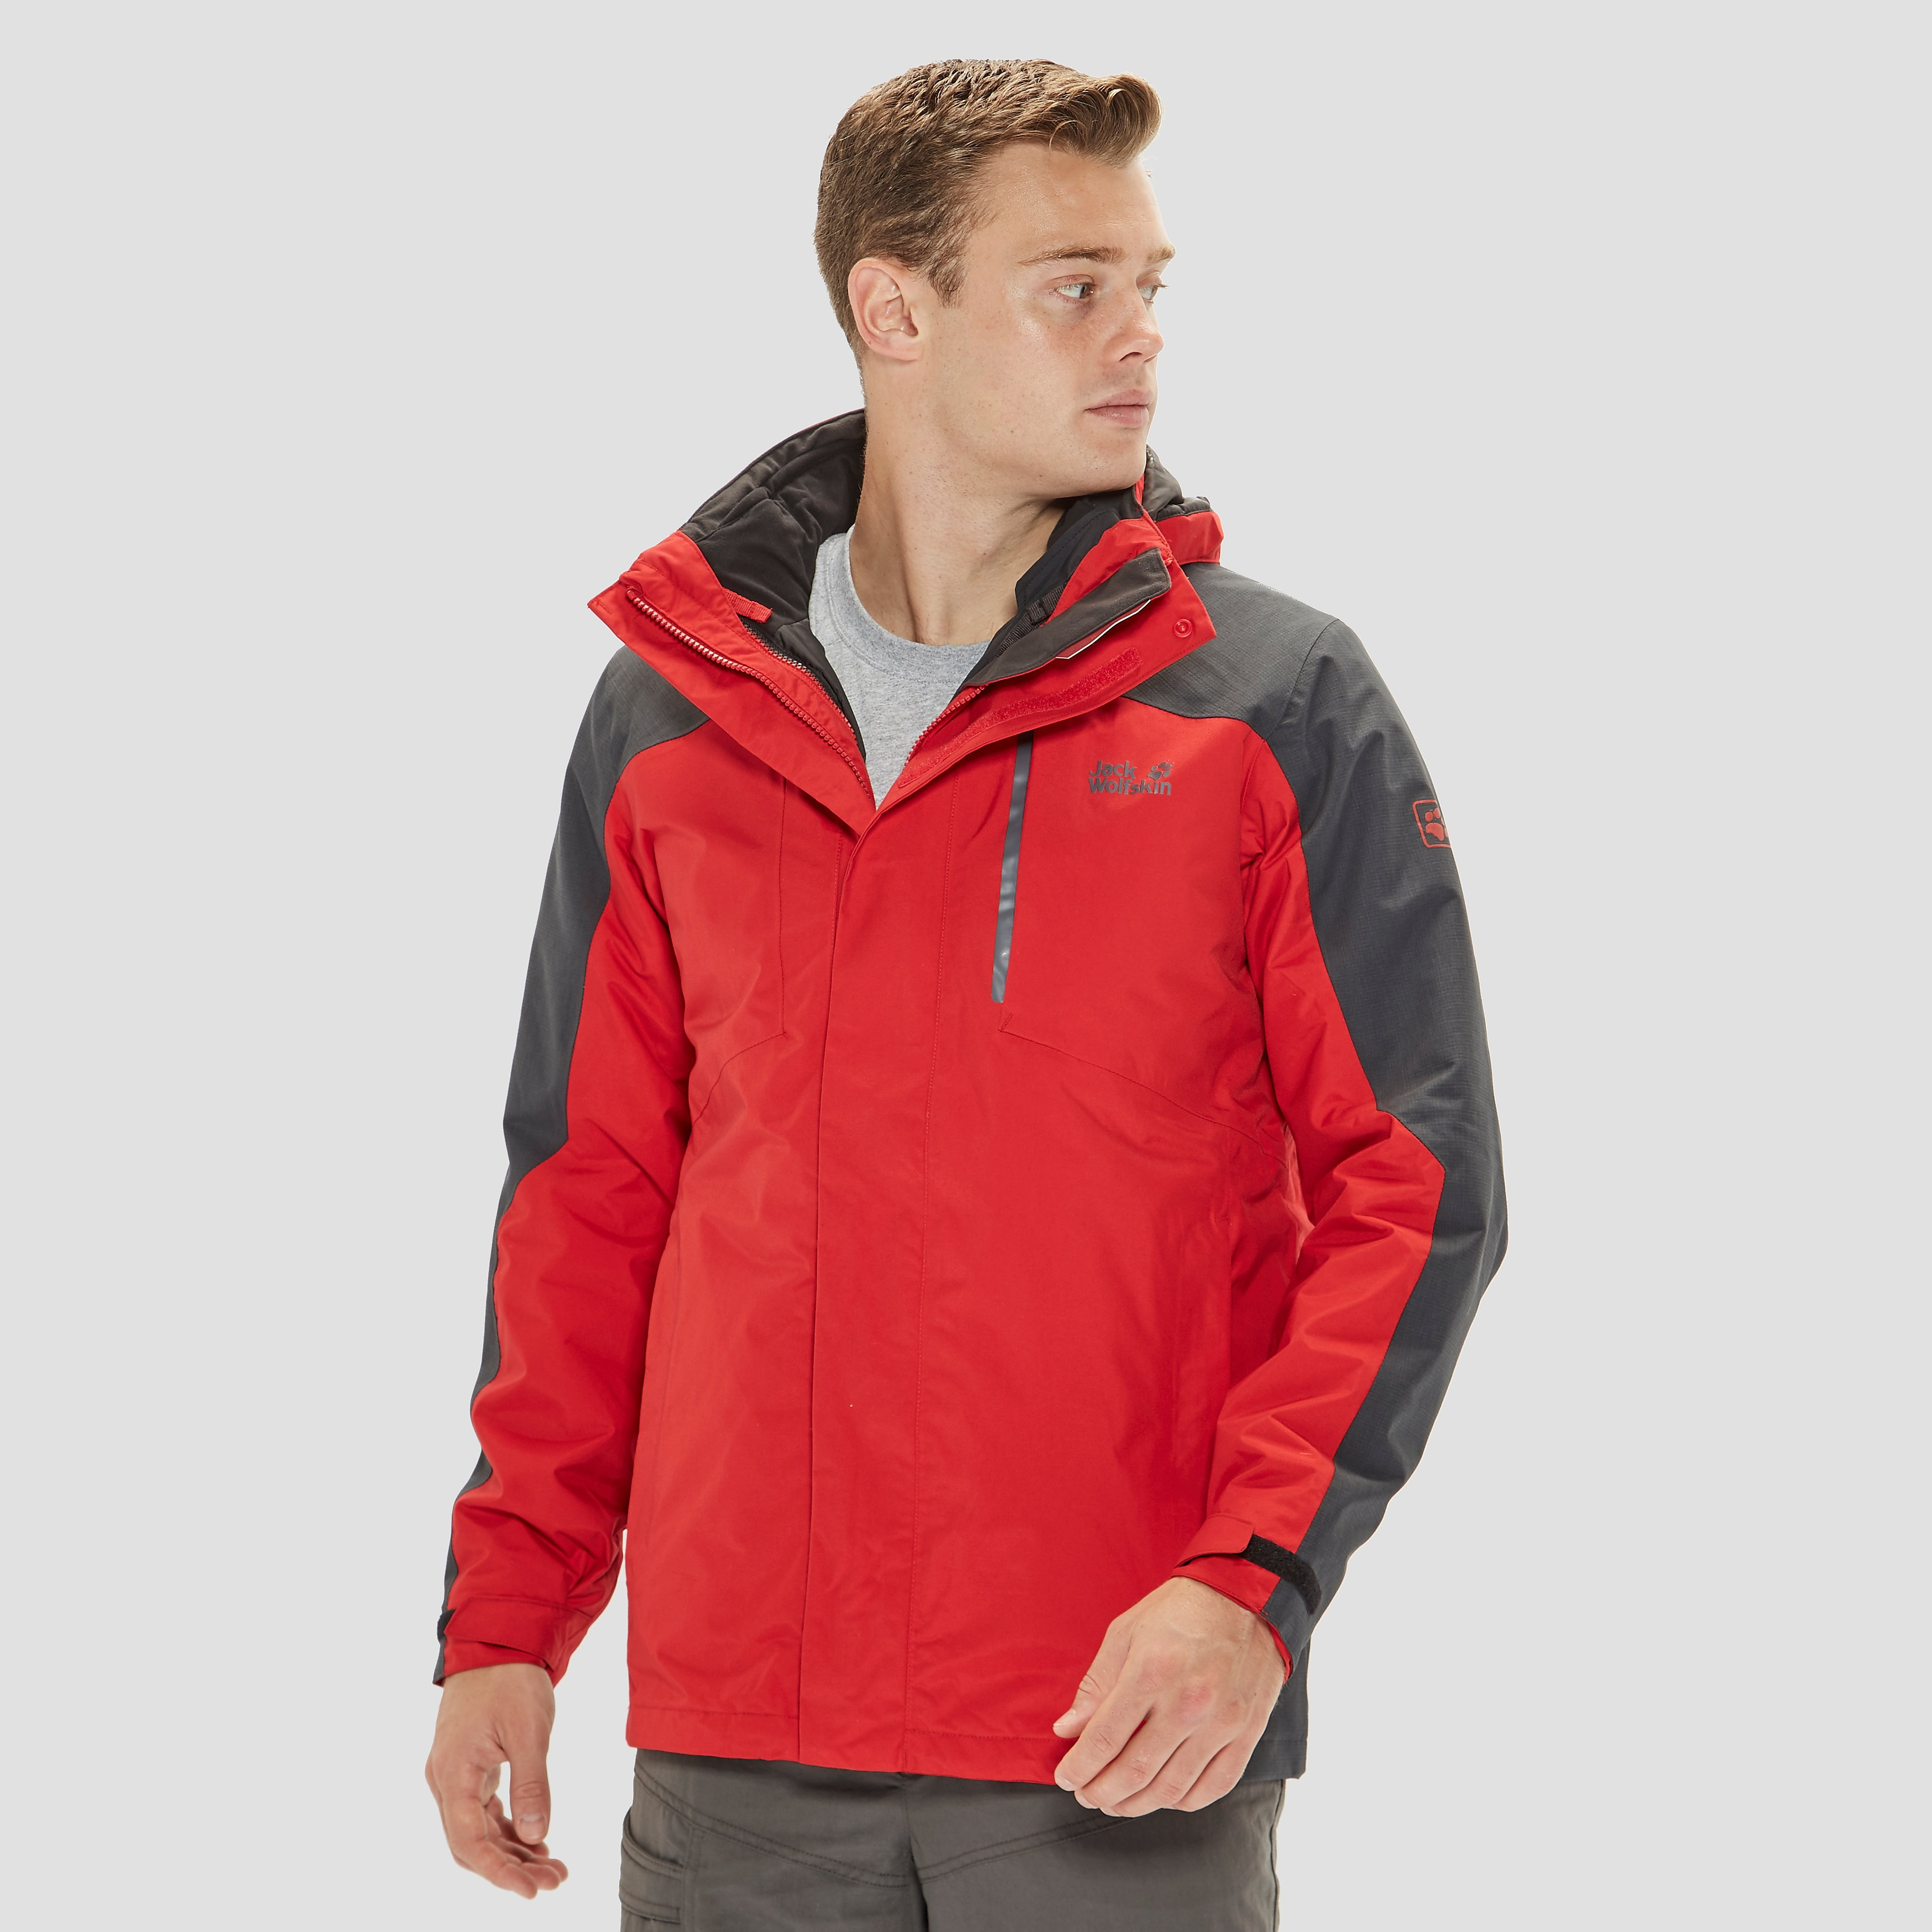 Jack Wolfskin Viking Sky Men's 3-In-1 Hardshell Jacket